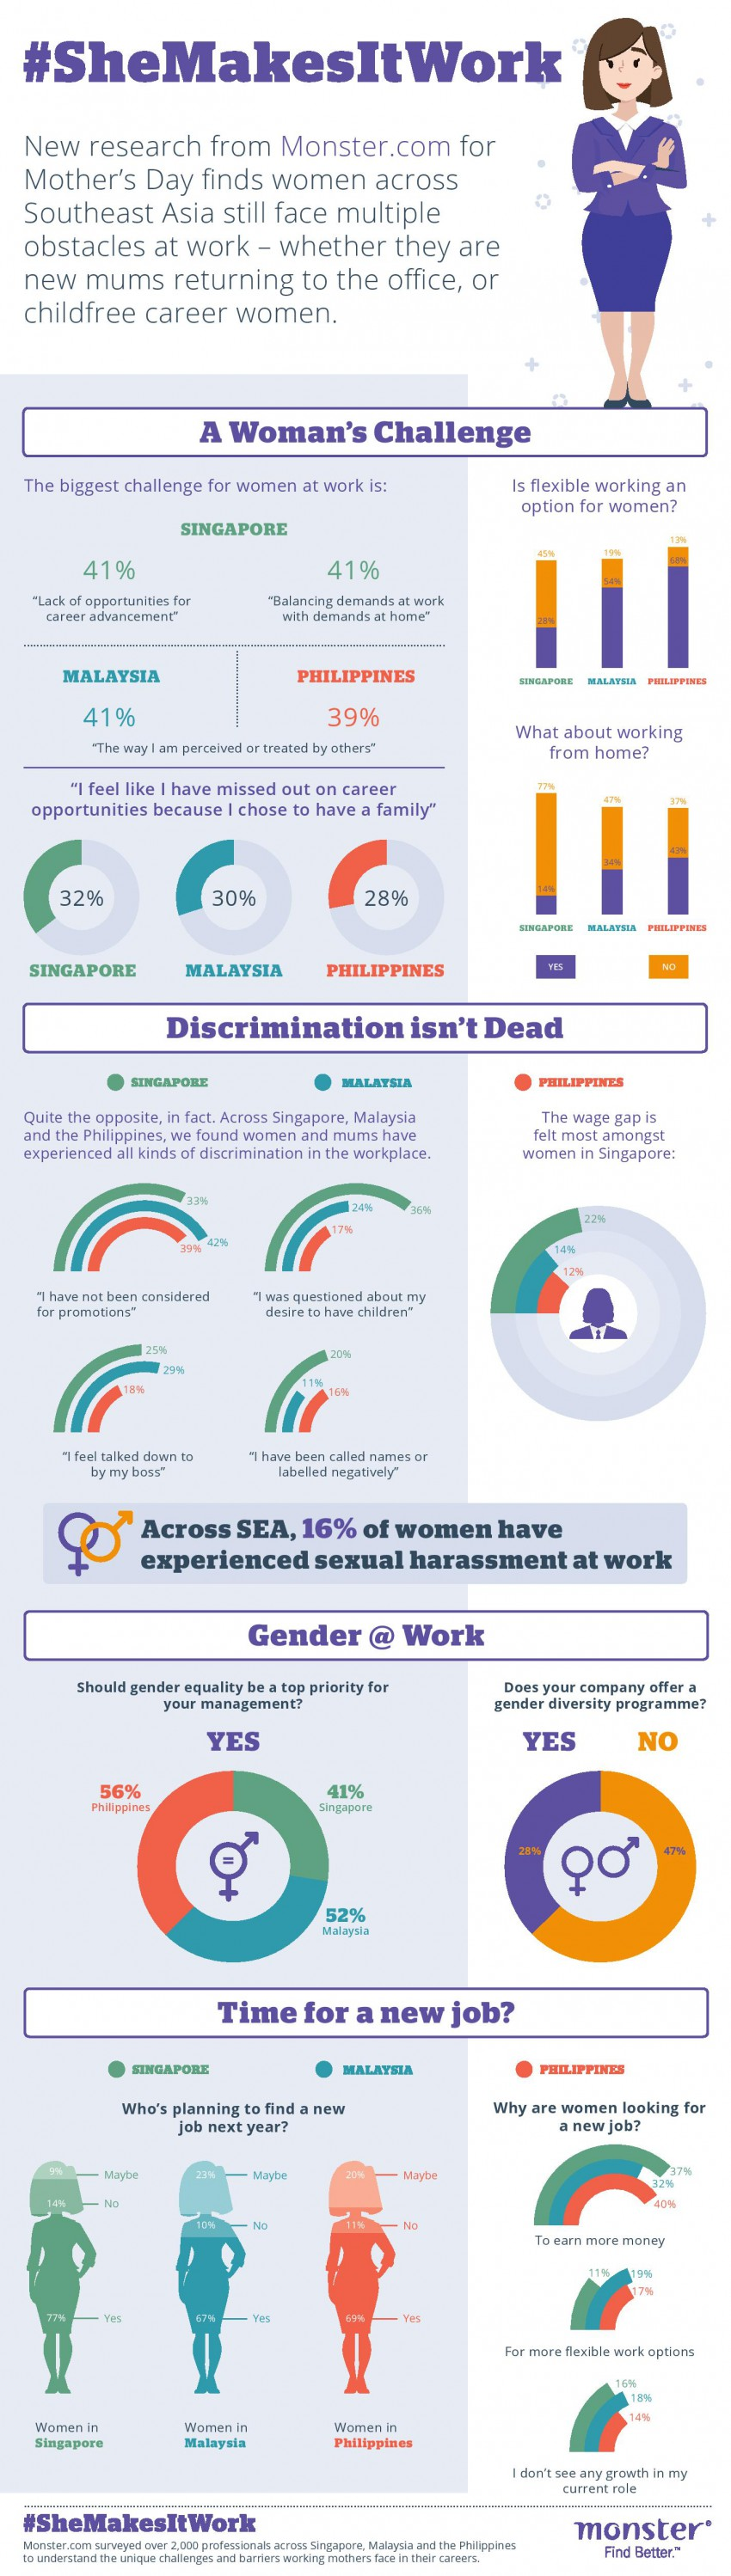 #SheMakesItWork_Southeast_Asia_Infographic_-page-001